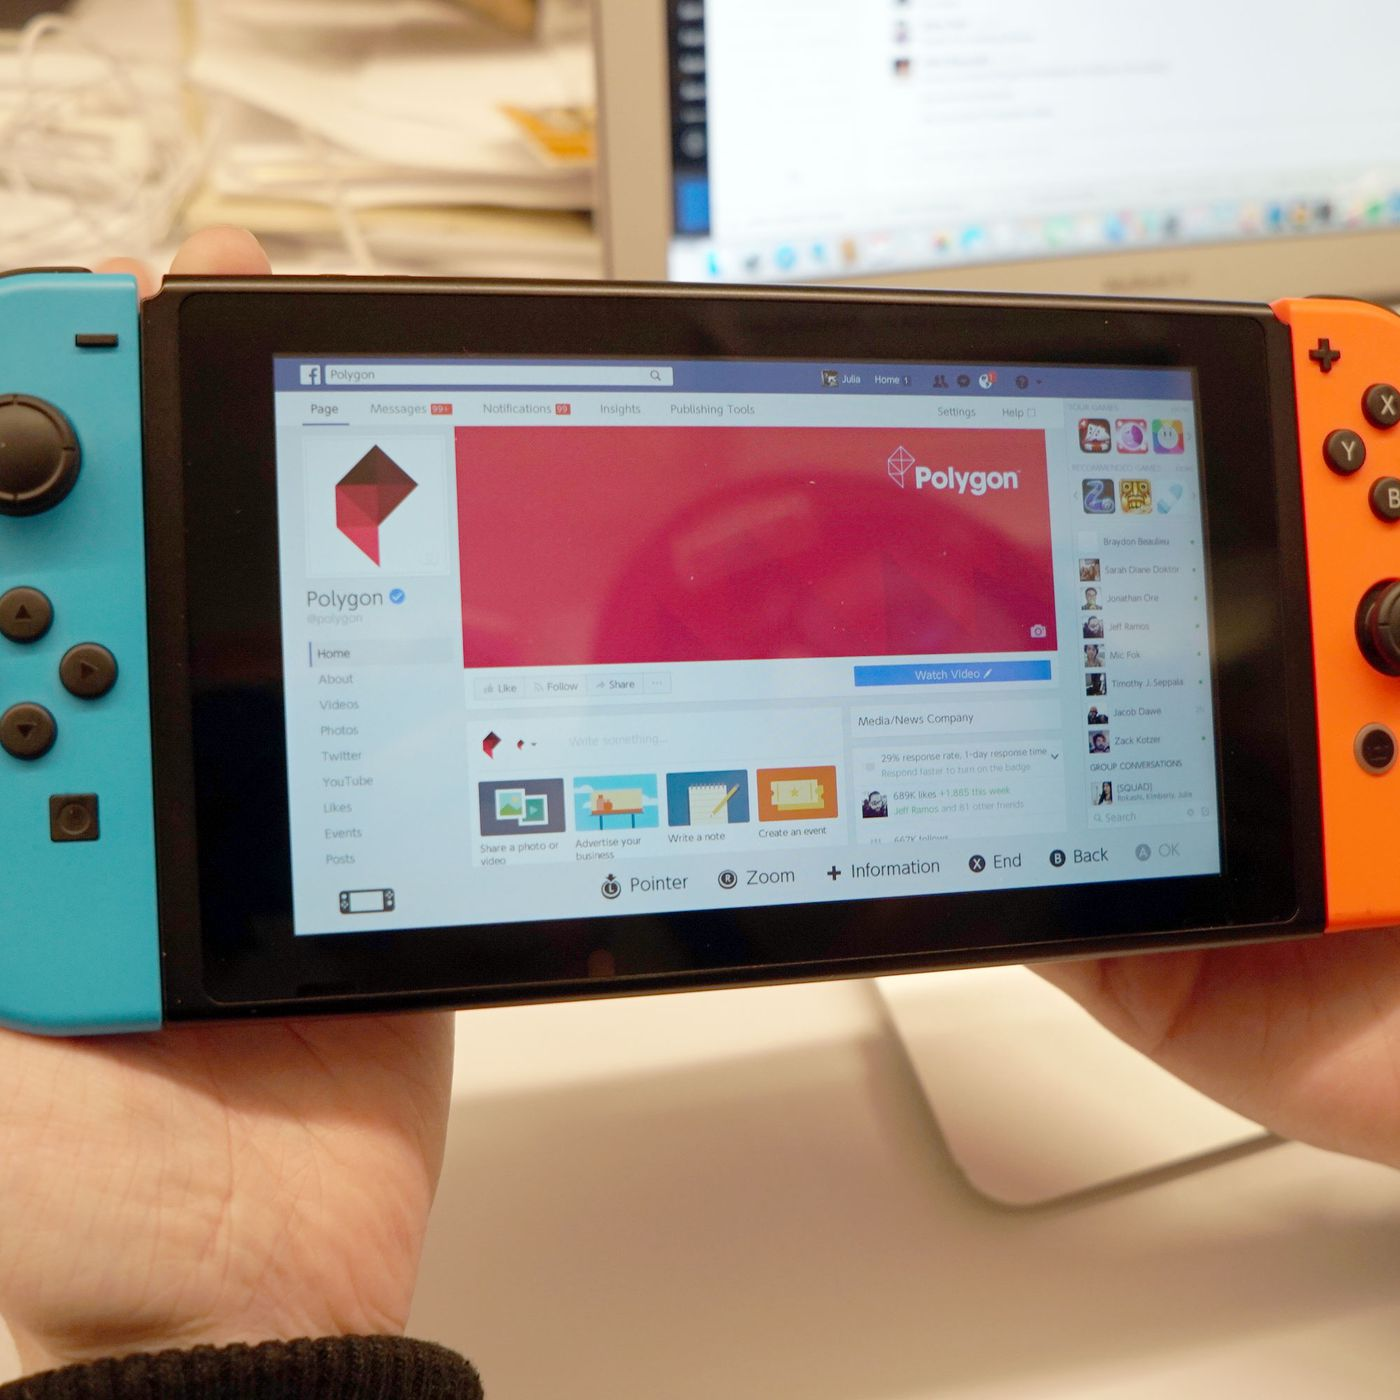 How to access Facebook and Twitter on your Switch, without a